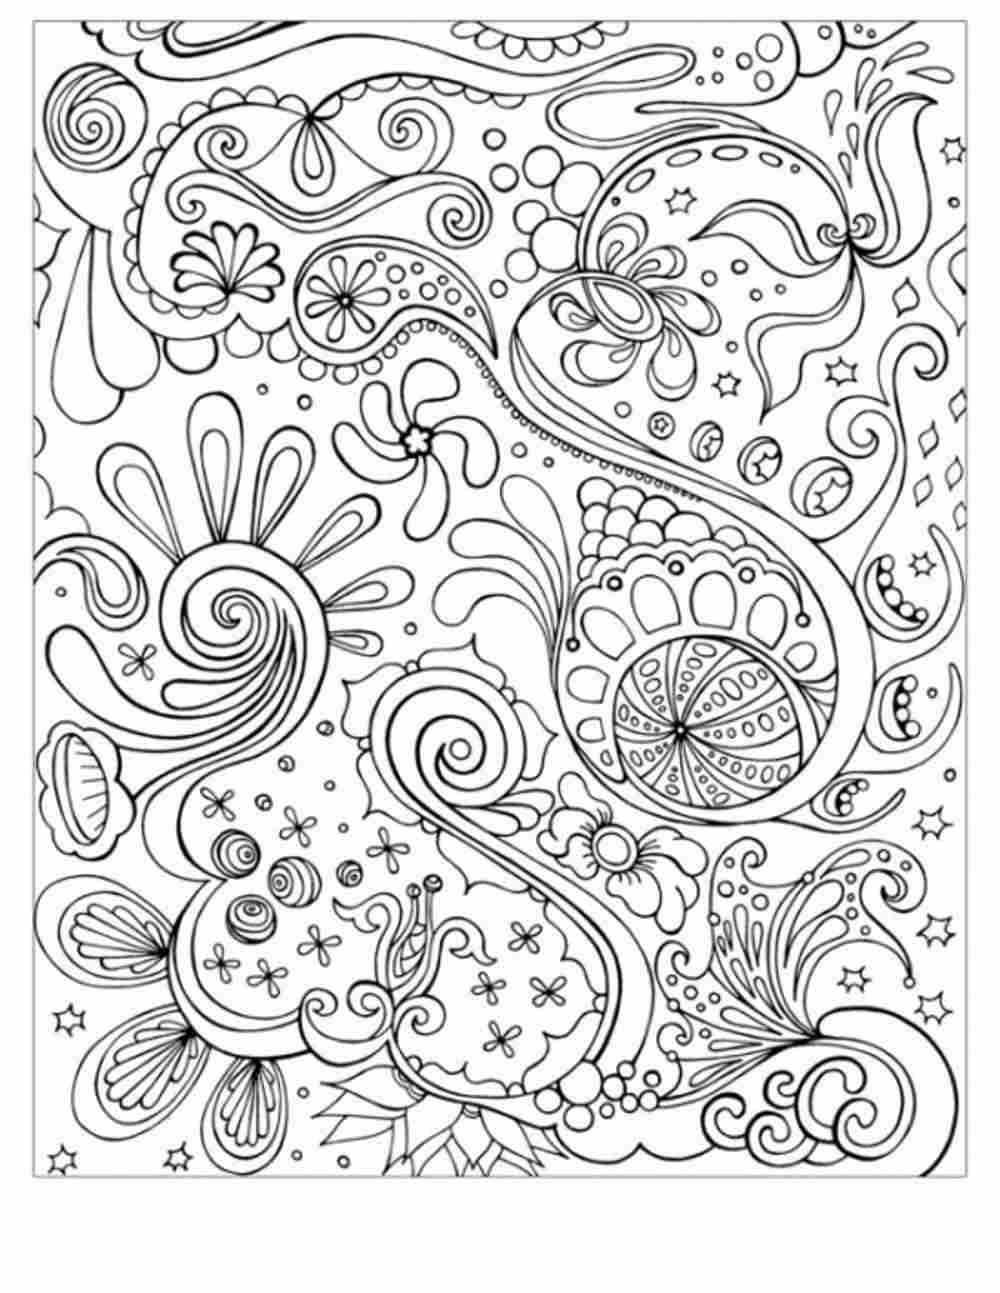 Printable coloring pages abstract - Abstract Coloring Pages For Adults Printable Kids Colouring Pages